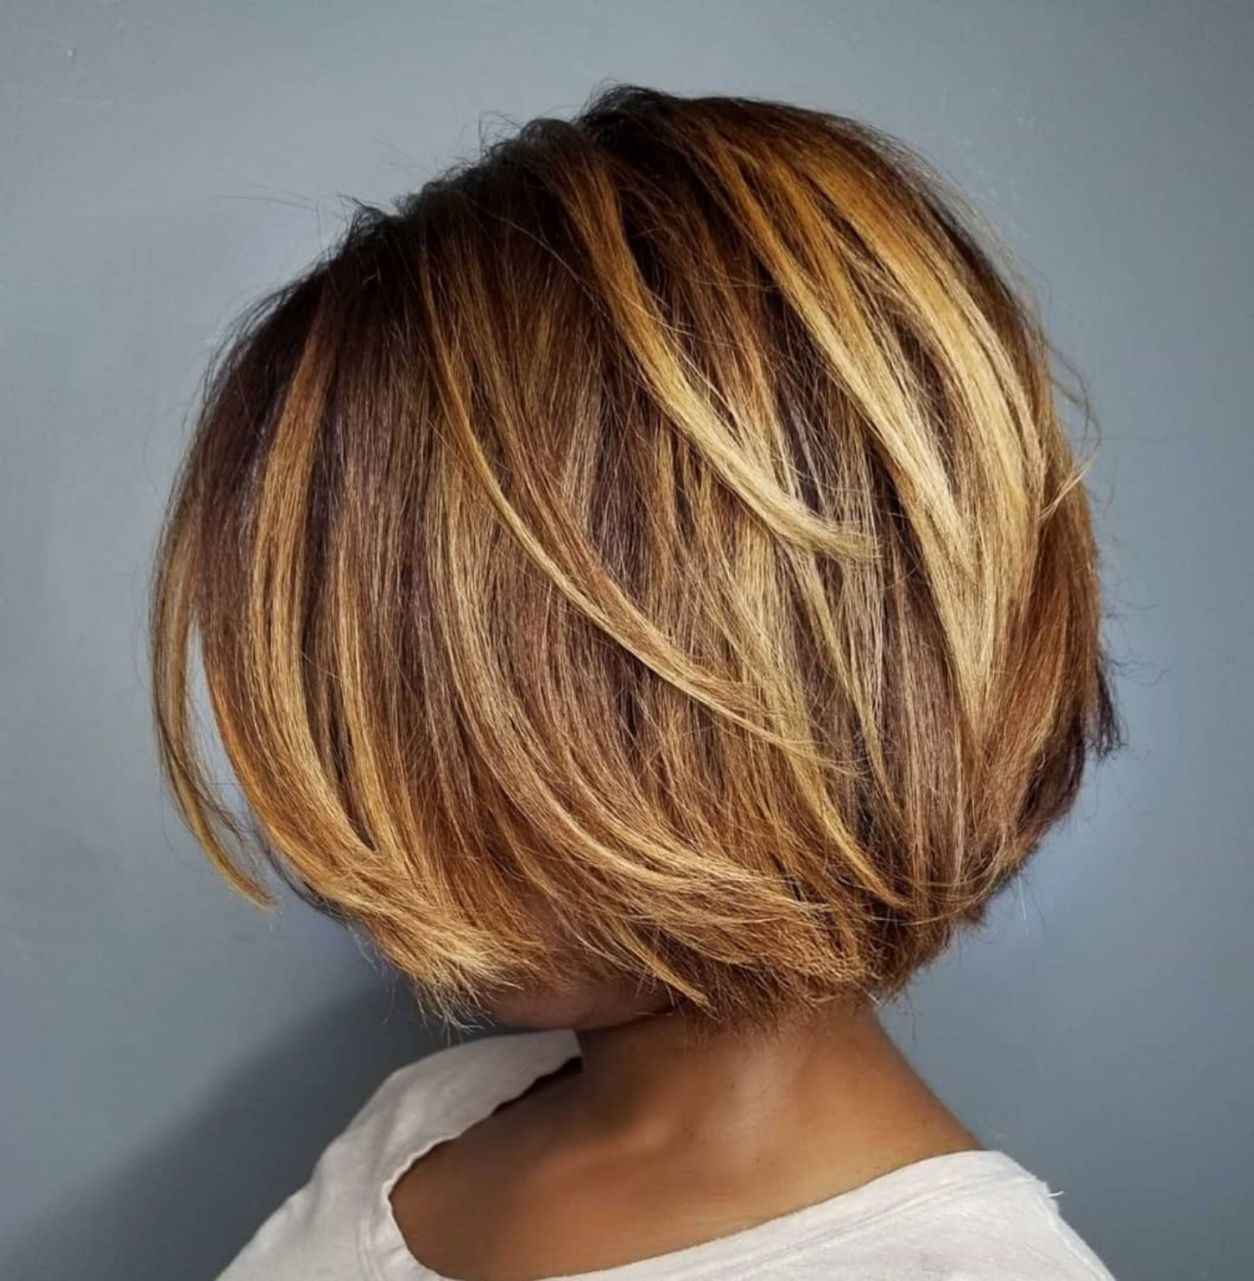 Short Sliced Bob For Black Women In 2020 Kapsels Kort Haar Kapsels Fijn Haar Kapsels